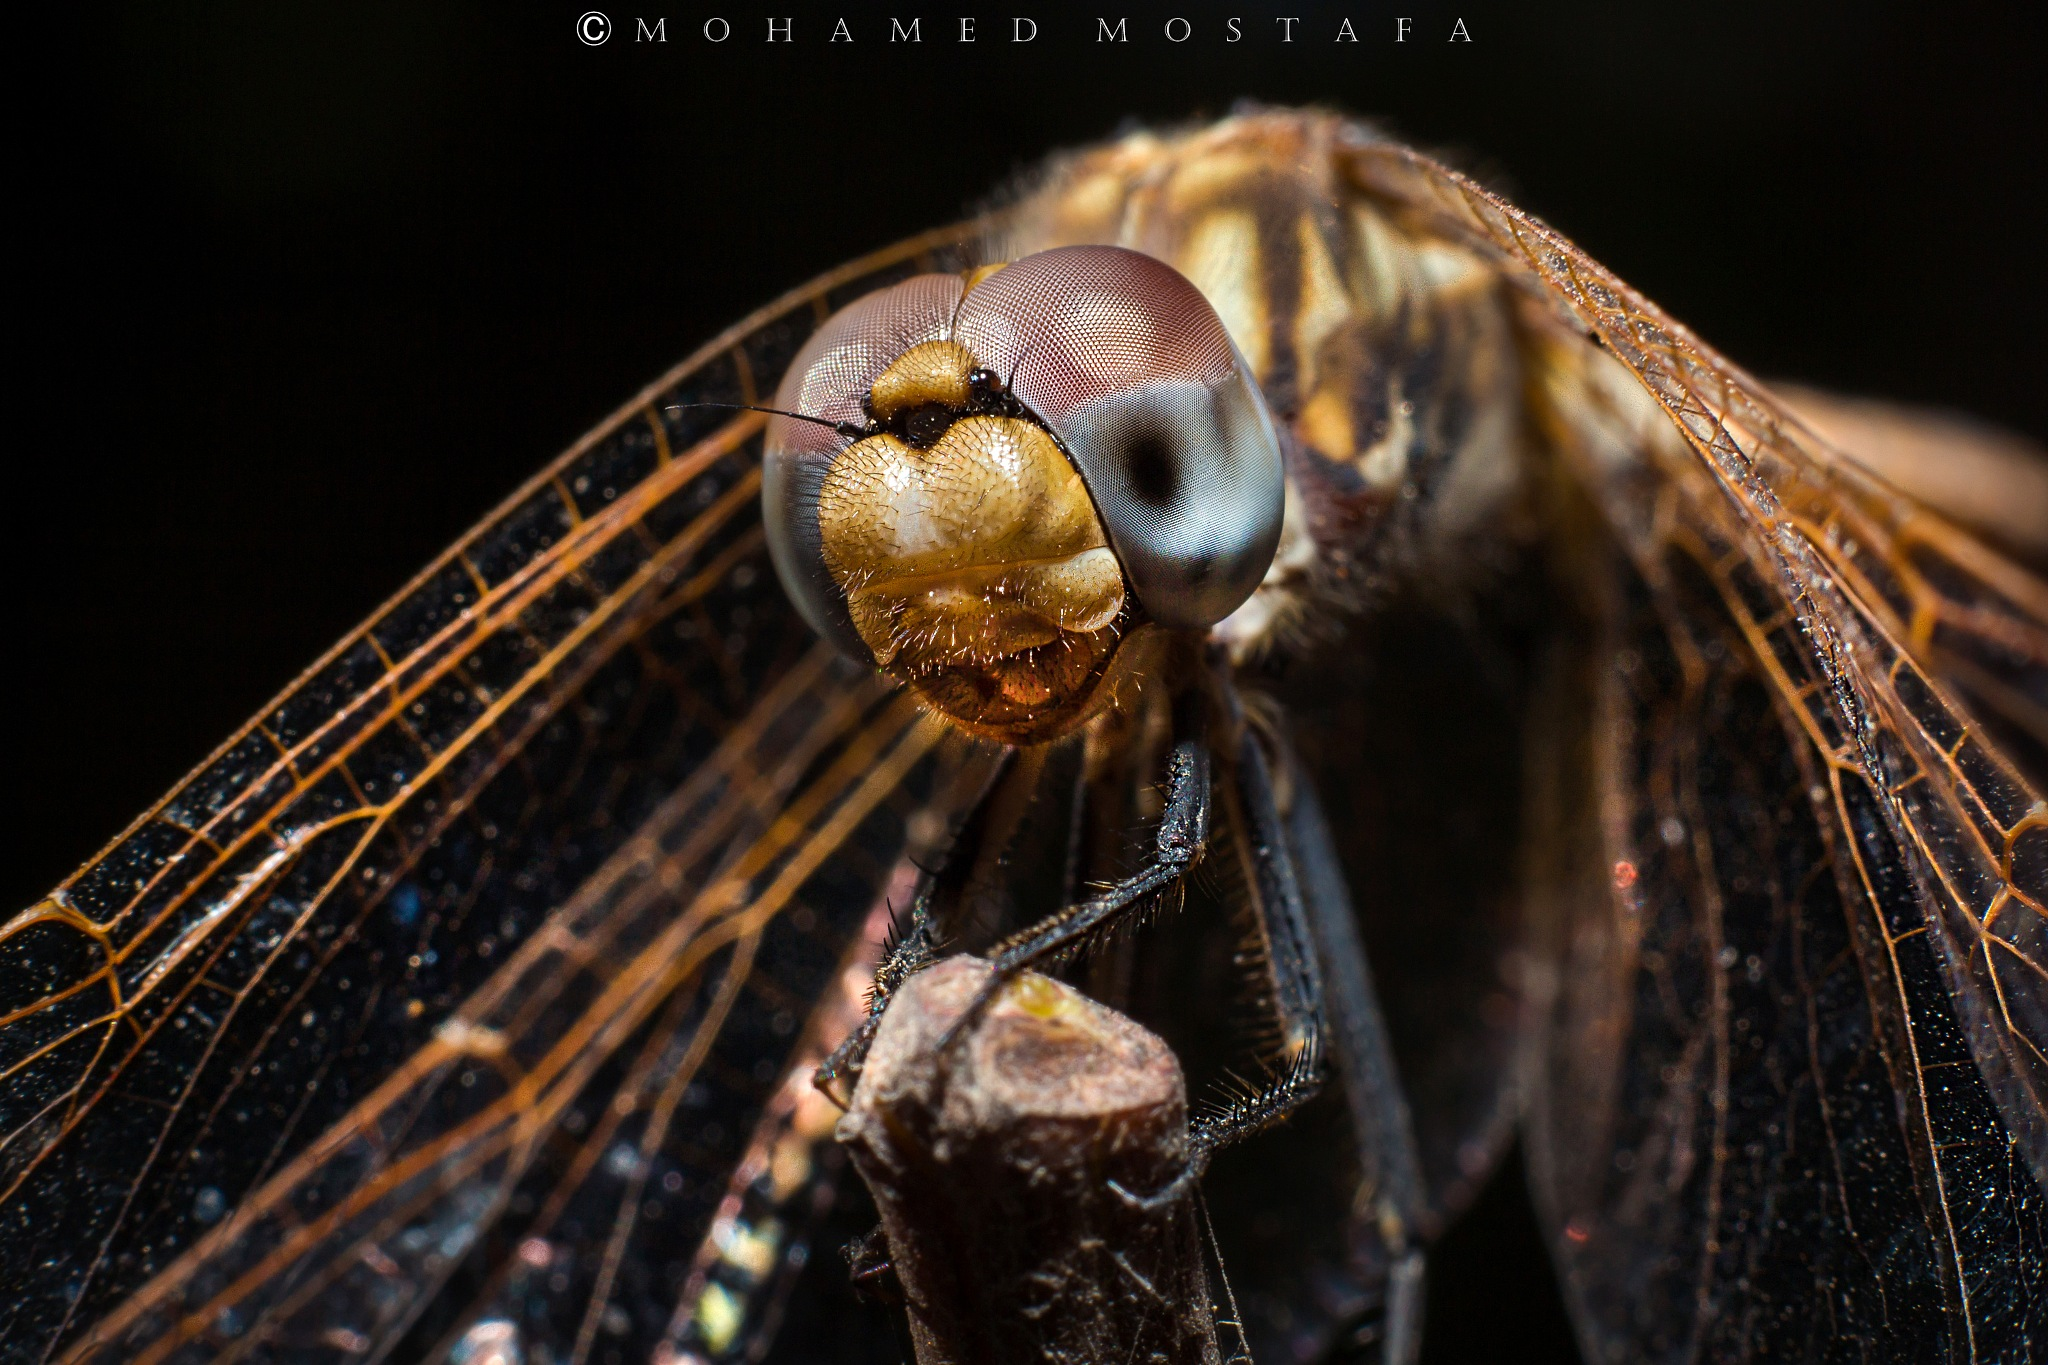 Mr. Dragon Fly ! by Mohamed Mostafa